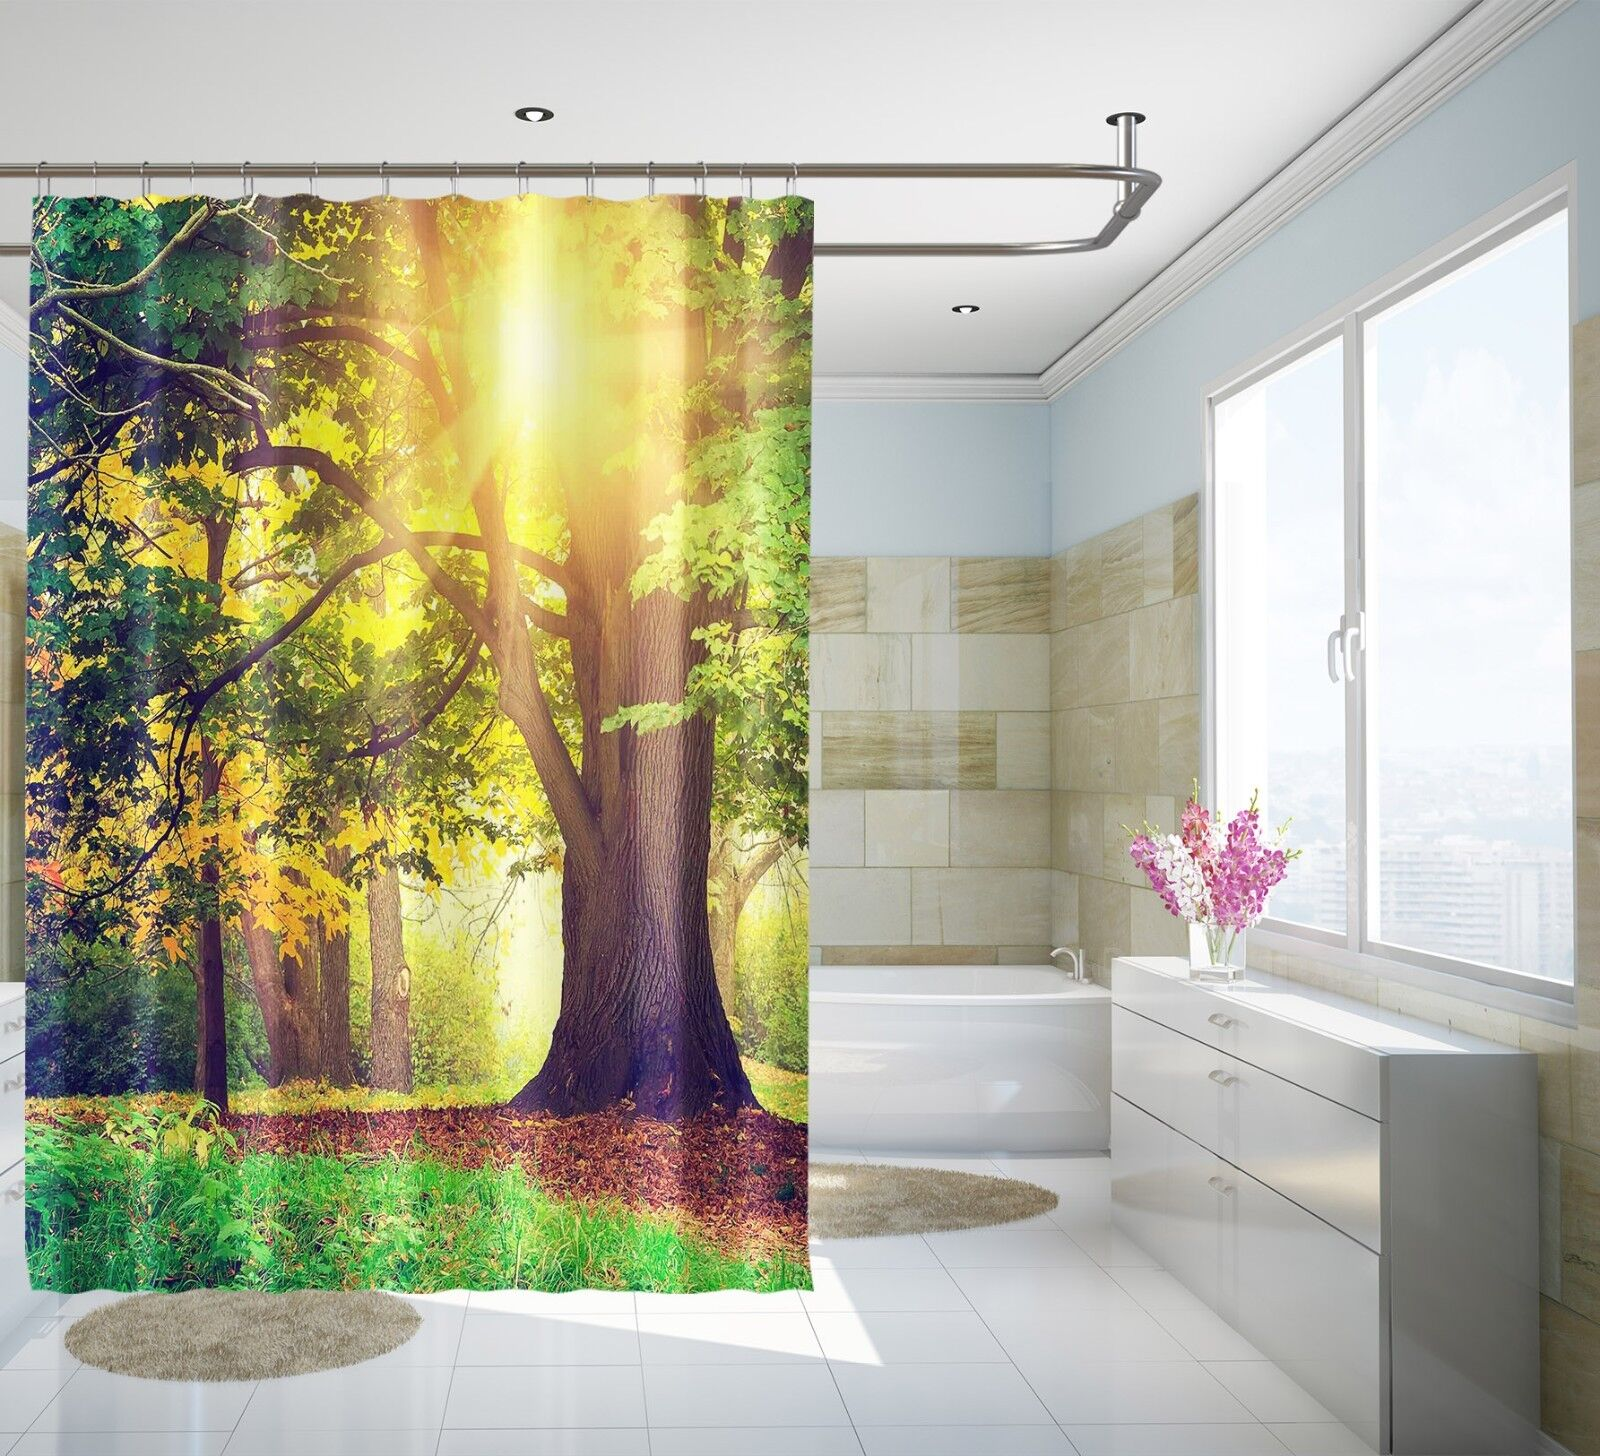 3D Arbre Sunshine 3 Rideau de Douche Imperméable Fibre Salle de Bain Home Windows Toilette